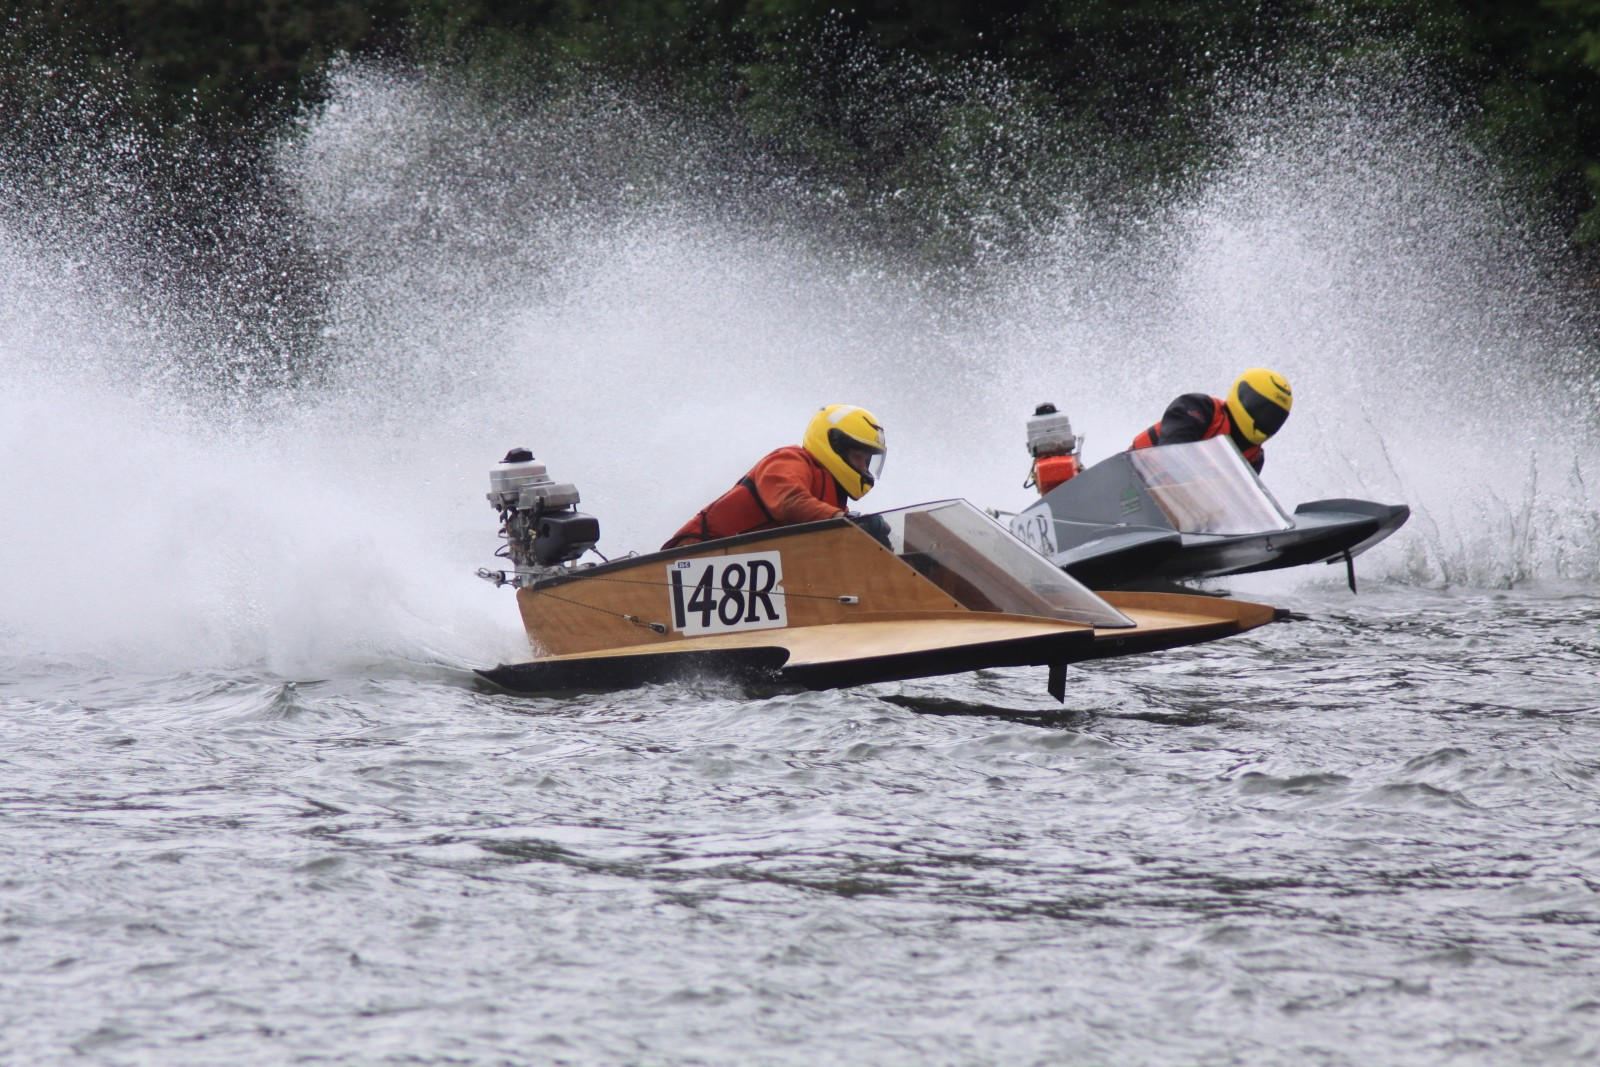 About Outboard Racing – Columbia Outboard Racing Association